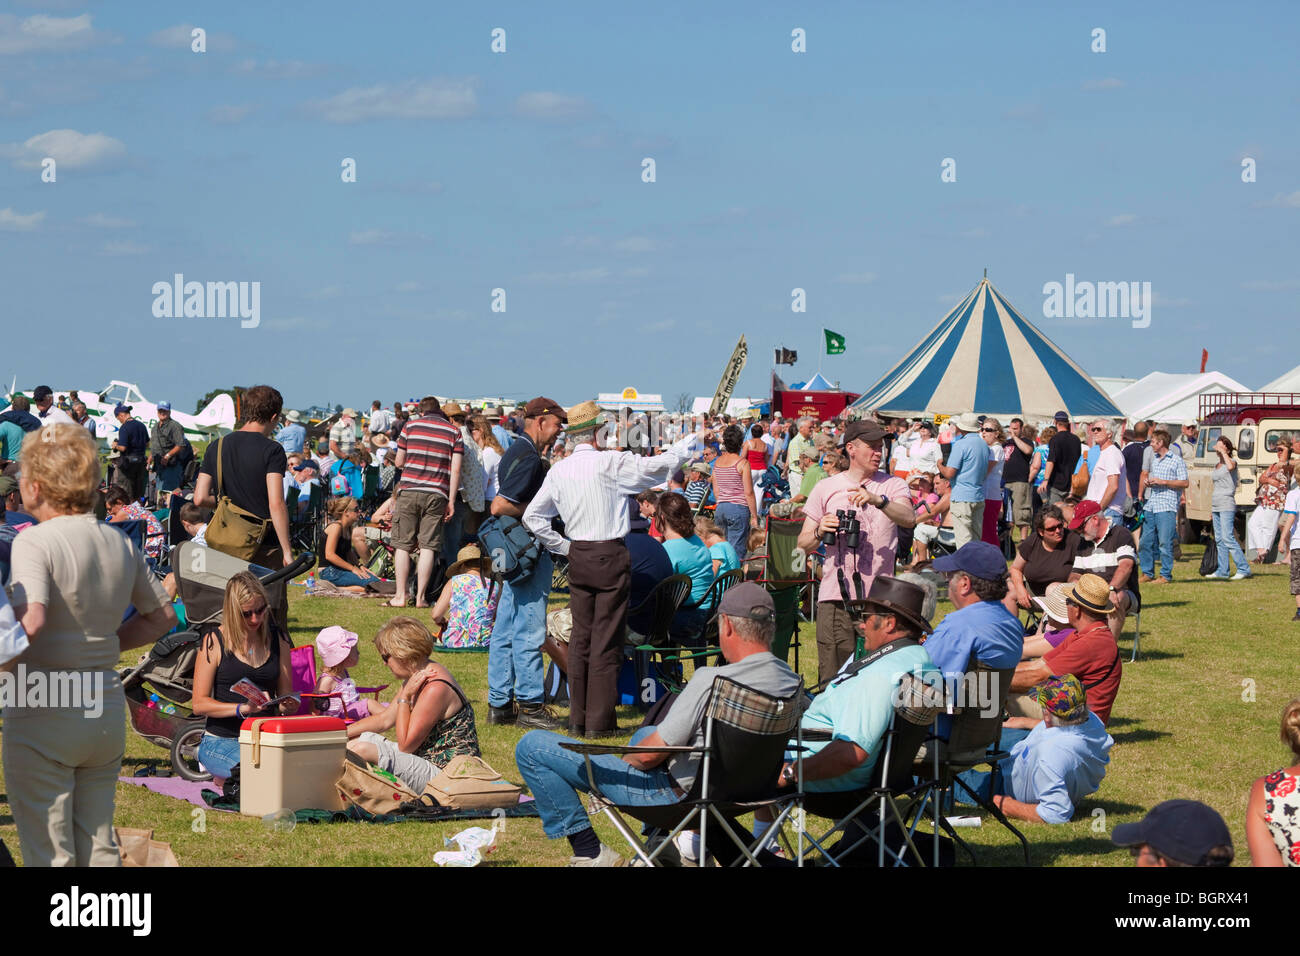 crowds of people at local public event at Rougham Airshow in Suffolk,  UK - Stock Image